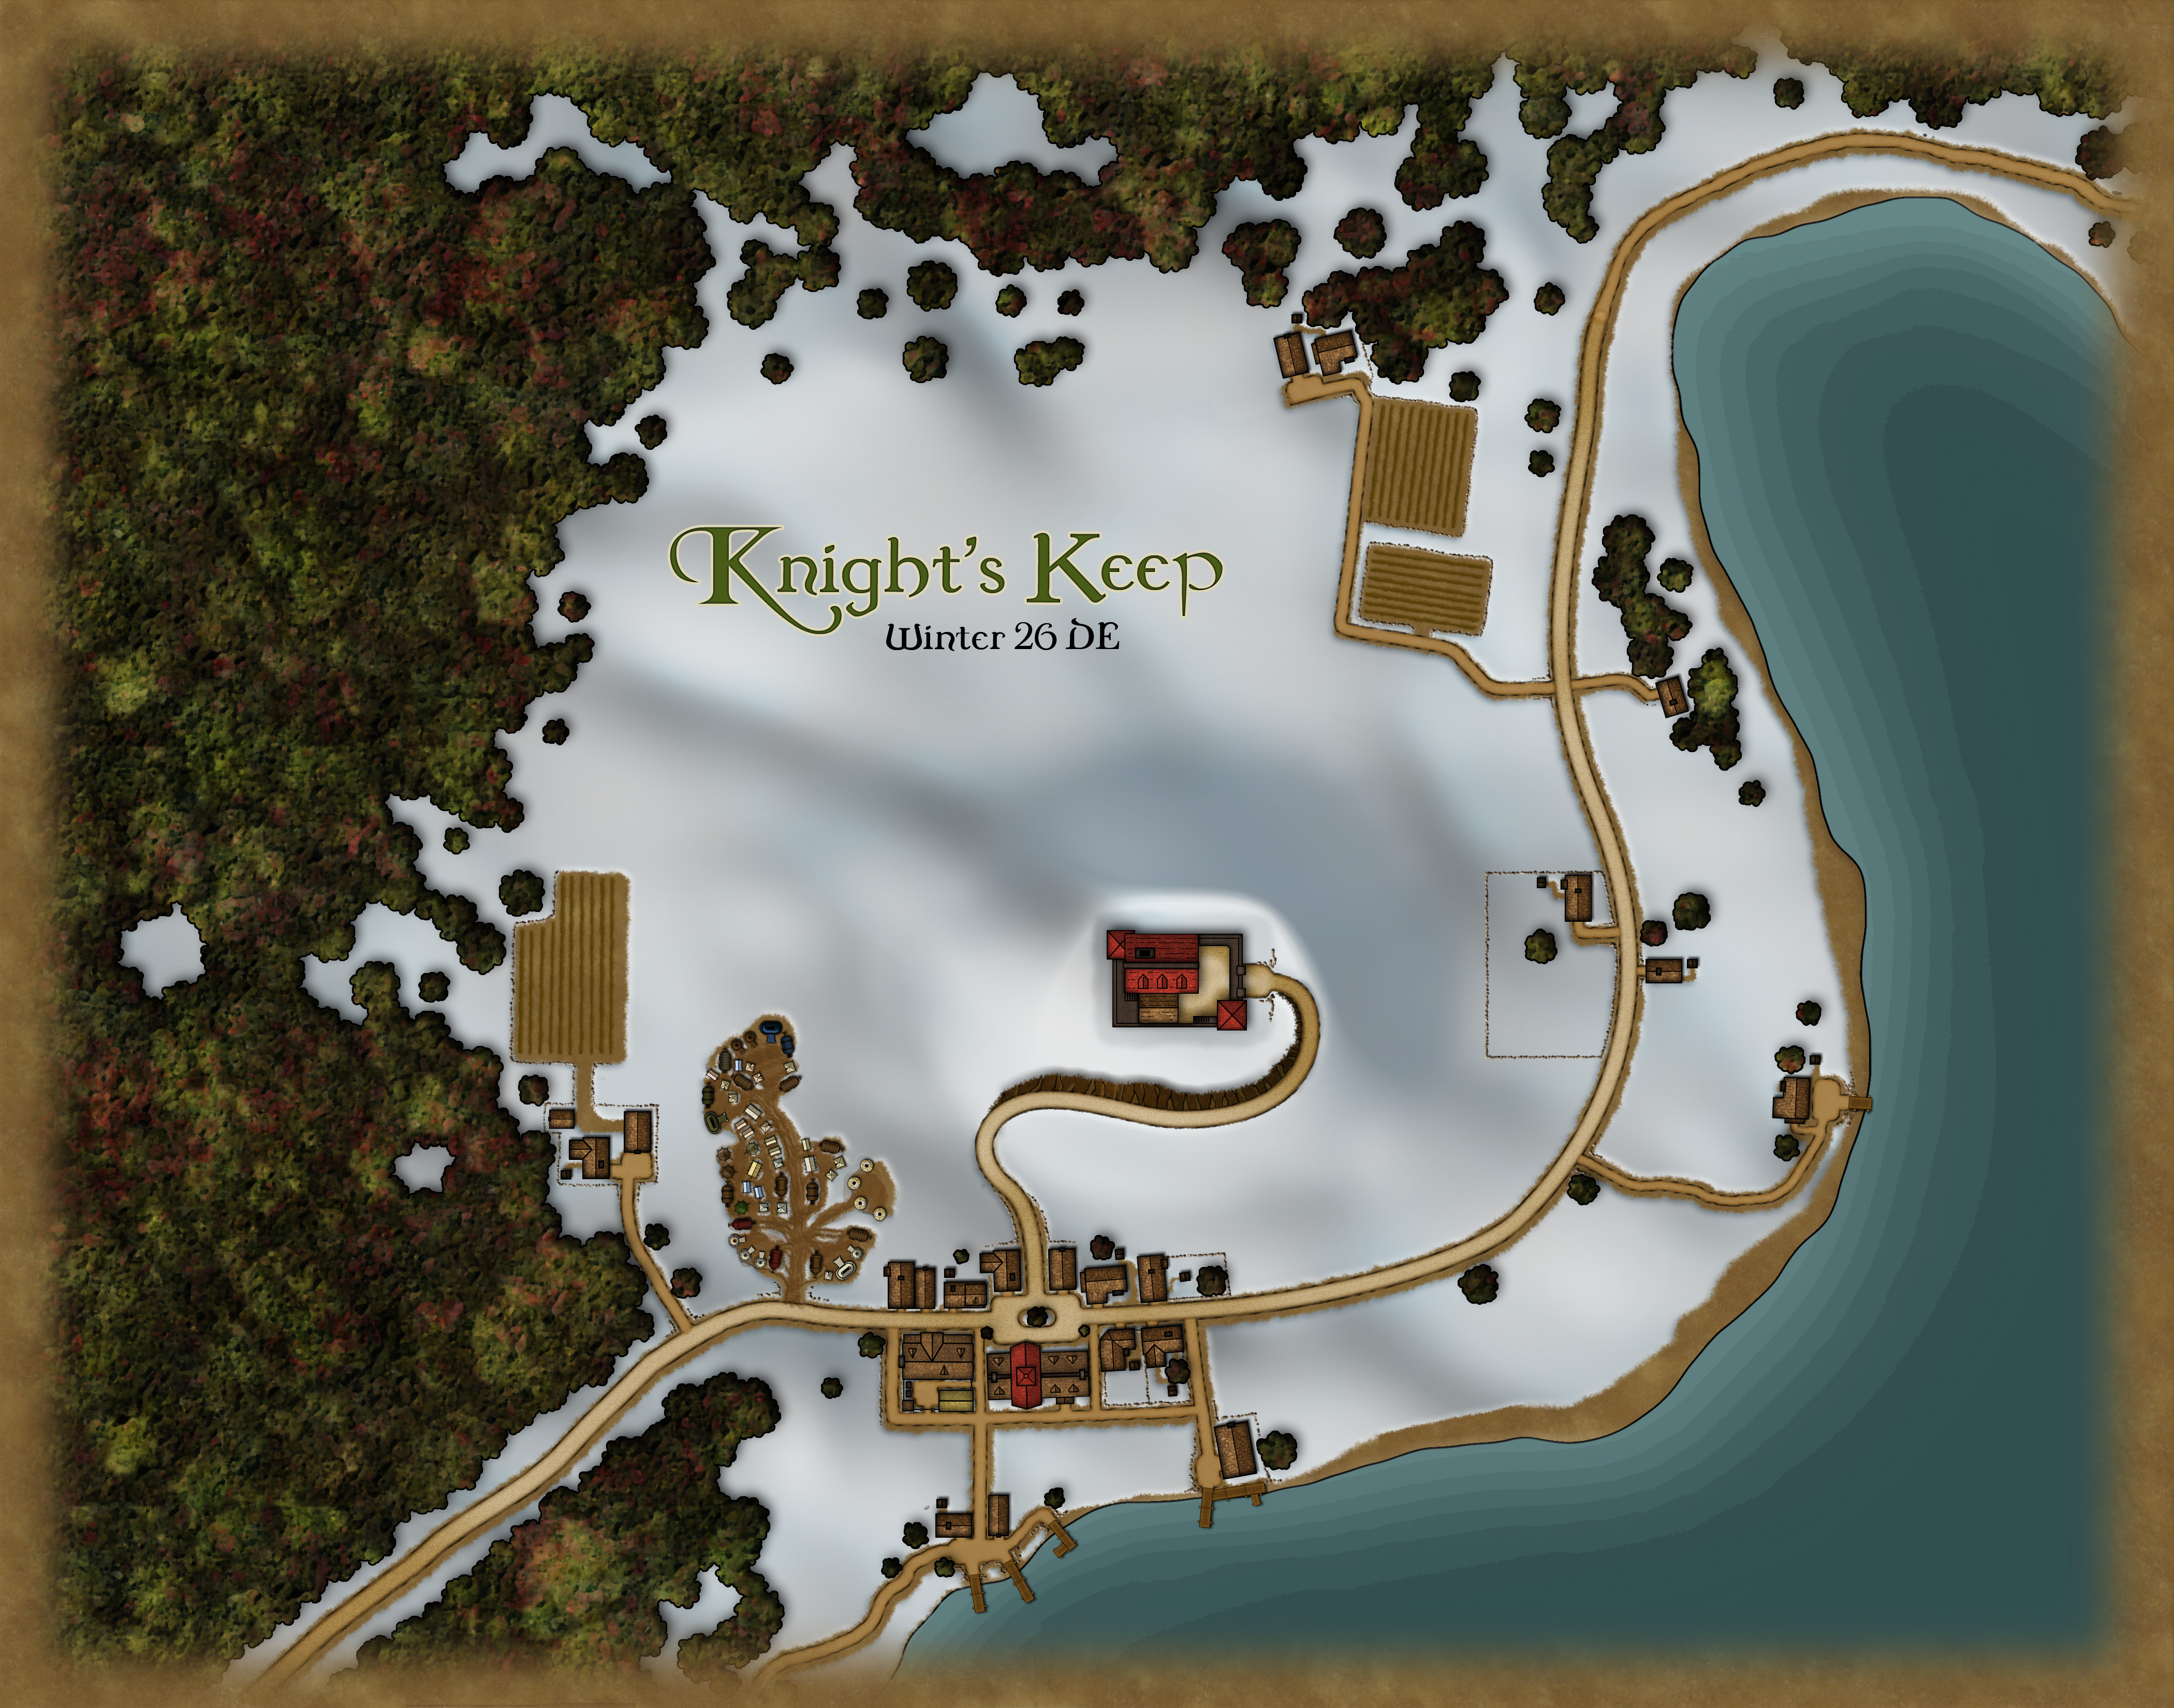 Knights Keep Winter 26 DE